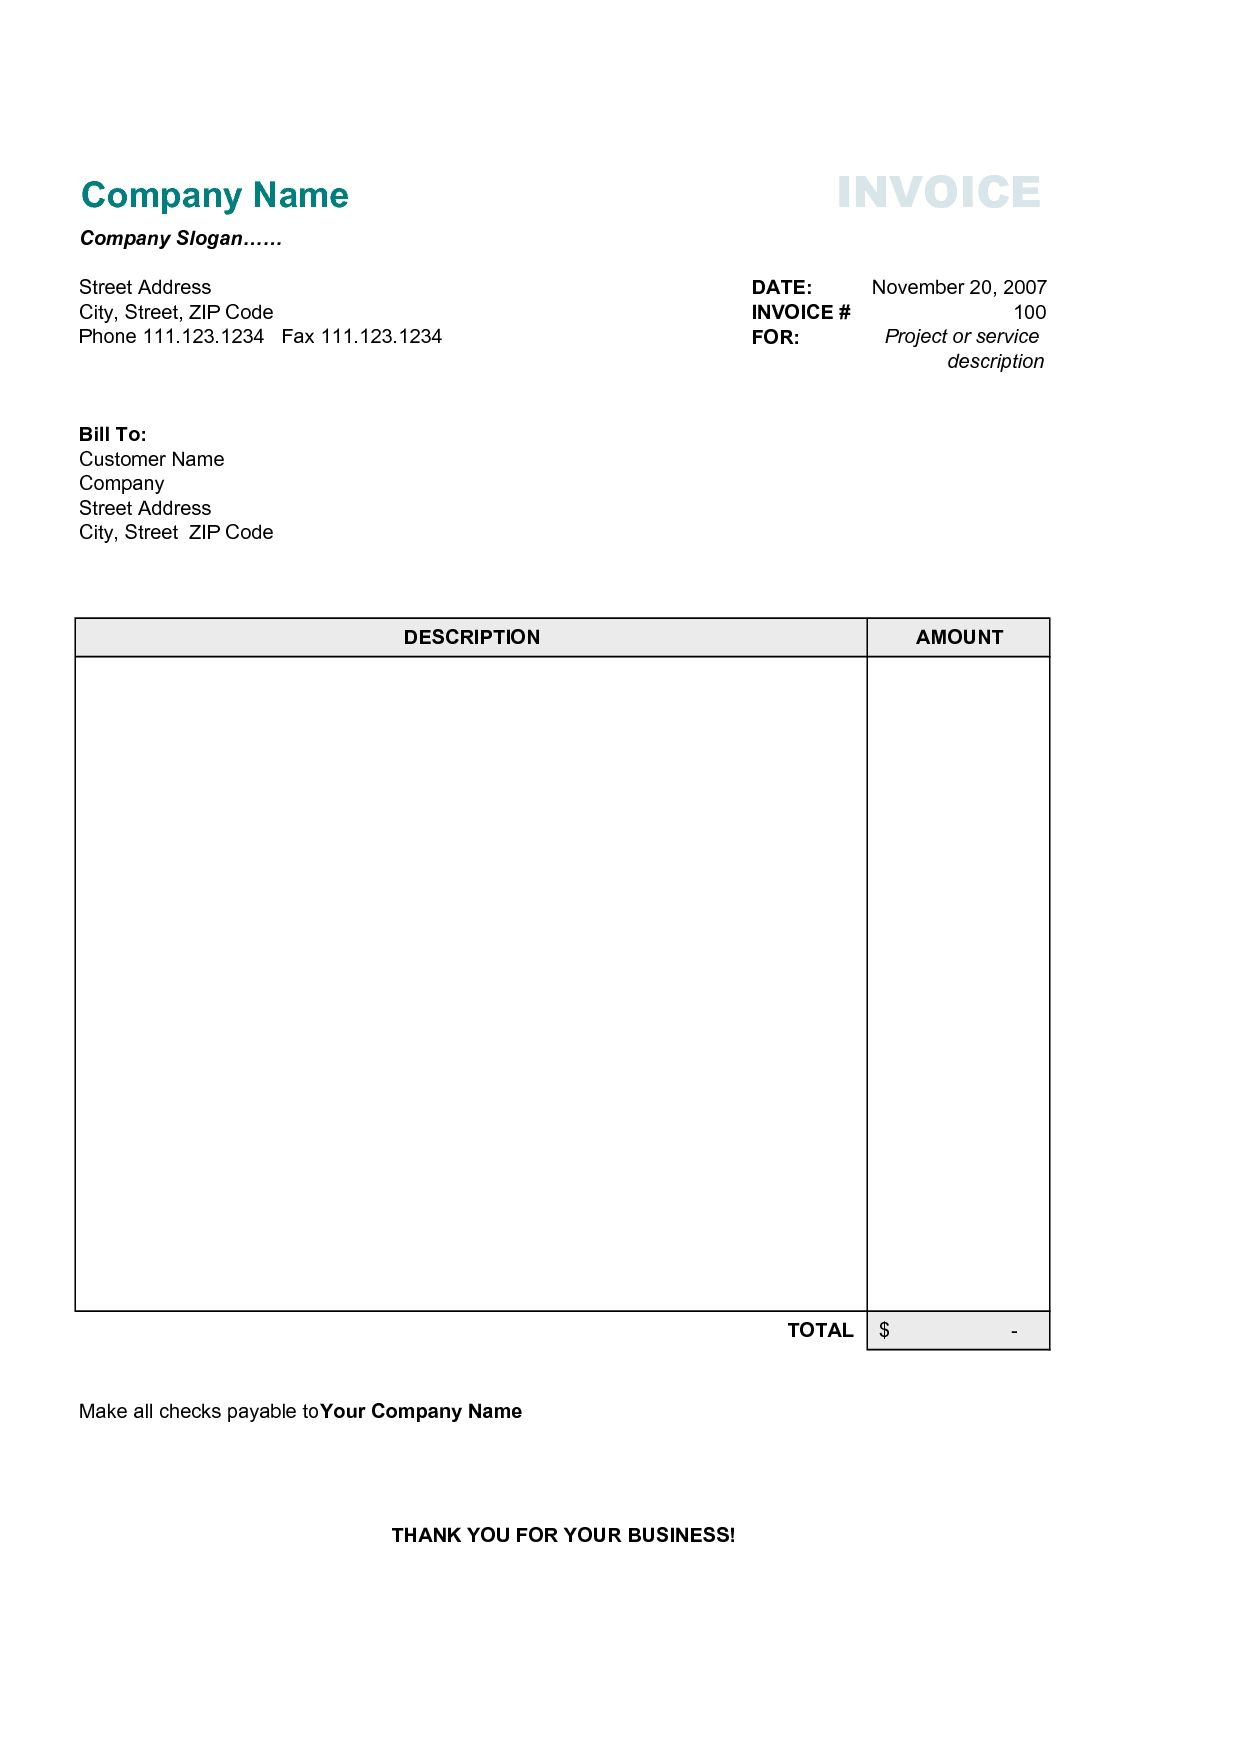 Best Photos Of Printable Commercial Invoice Sample Business - Best of printable receipt template ideas